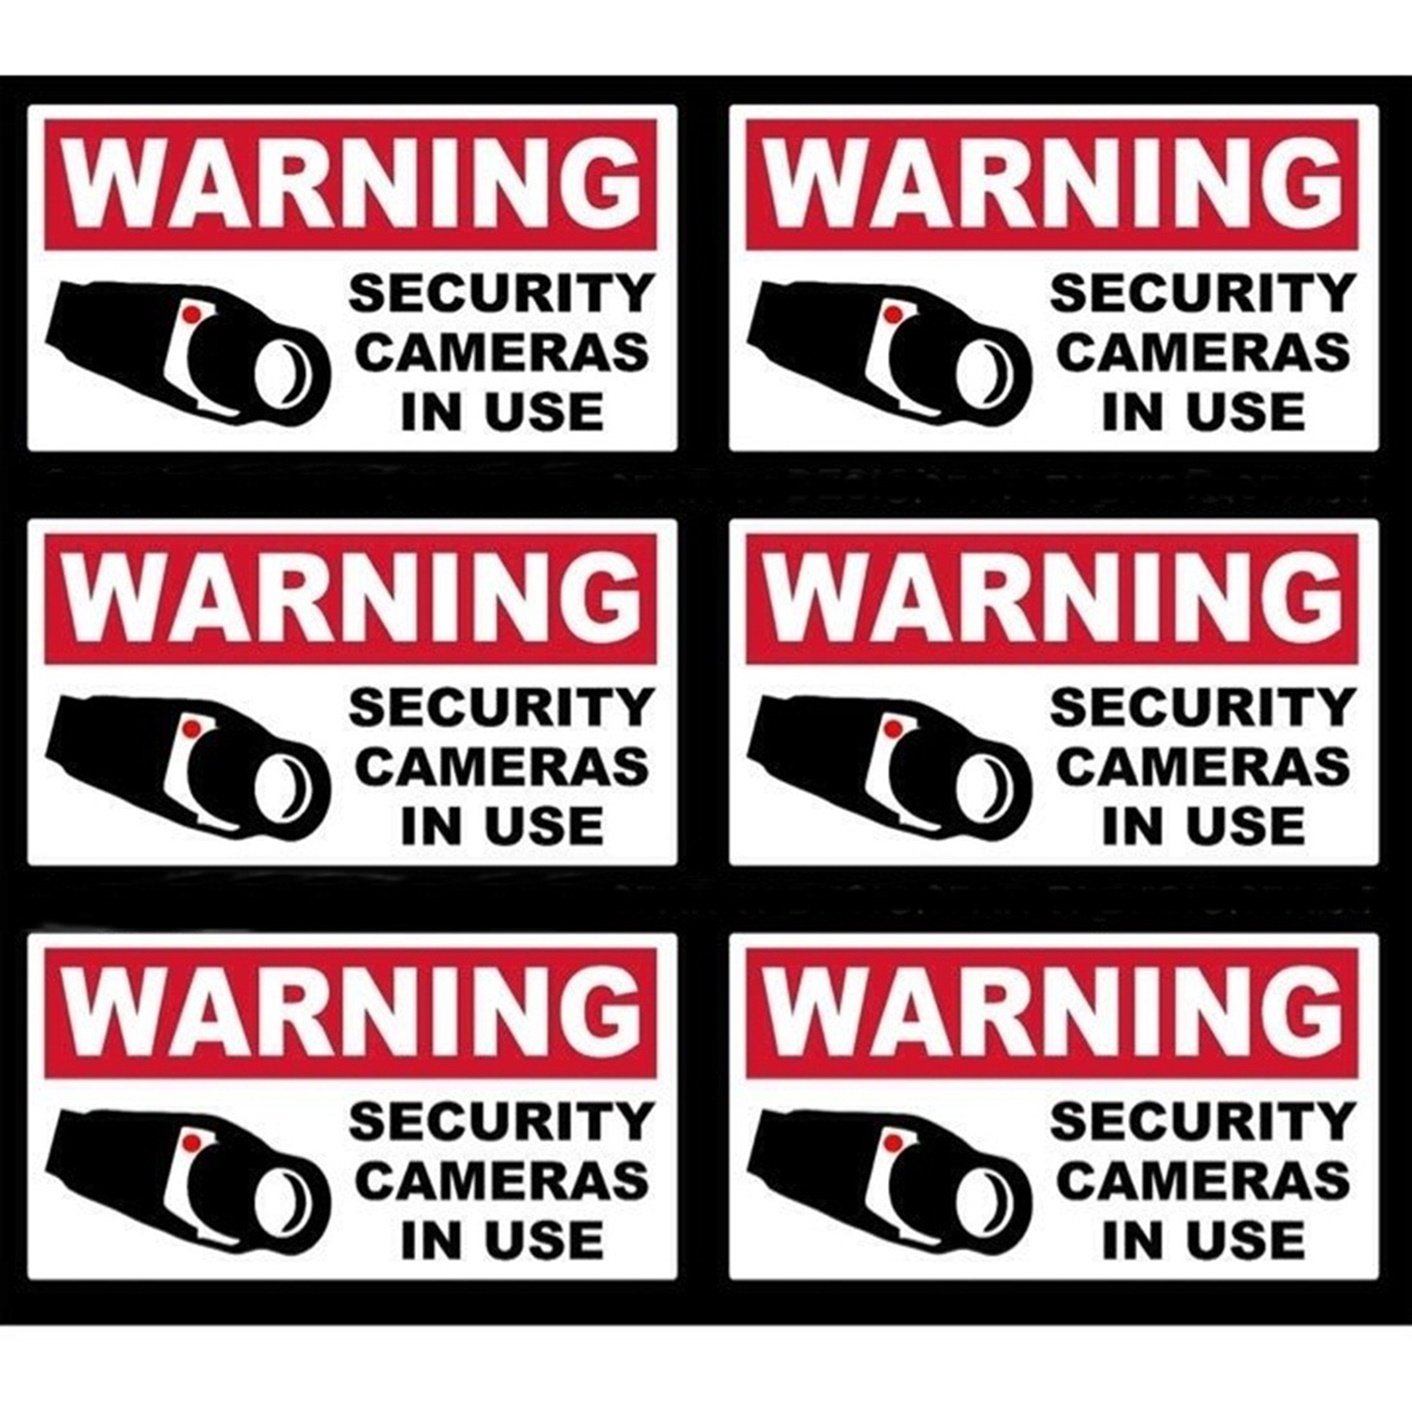 6 Pcs Inspiring Unique Warning Security Cameras in Use Video Surveillance Sticker Yard Sign Adhesive Premises Monitored Business Under Protect Post Window Hour Tools Hr Decals Outdoor Lawn Size 4''x2''